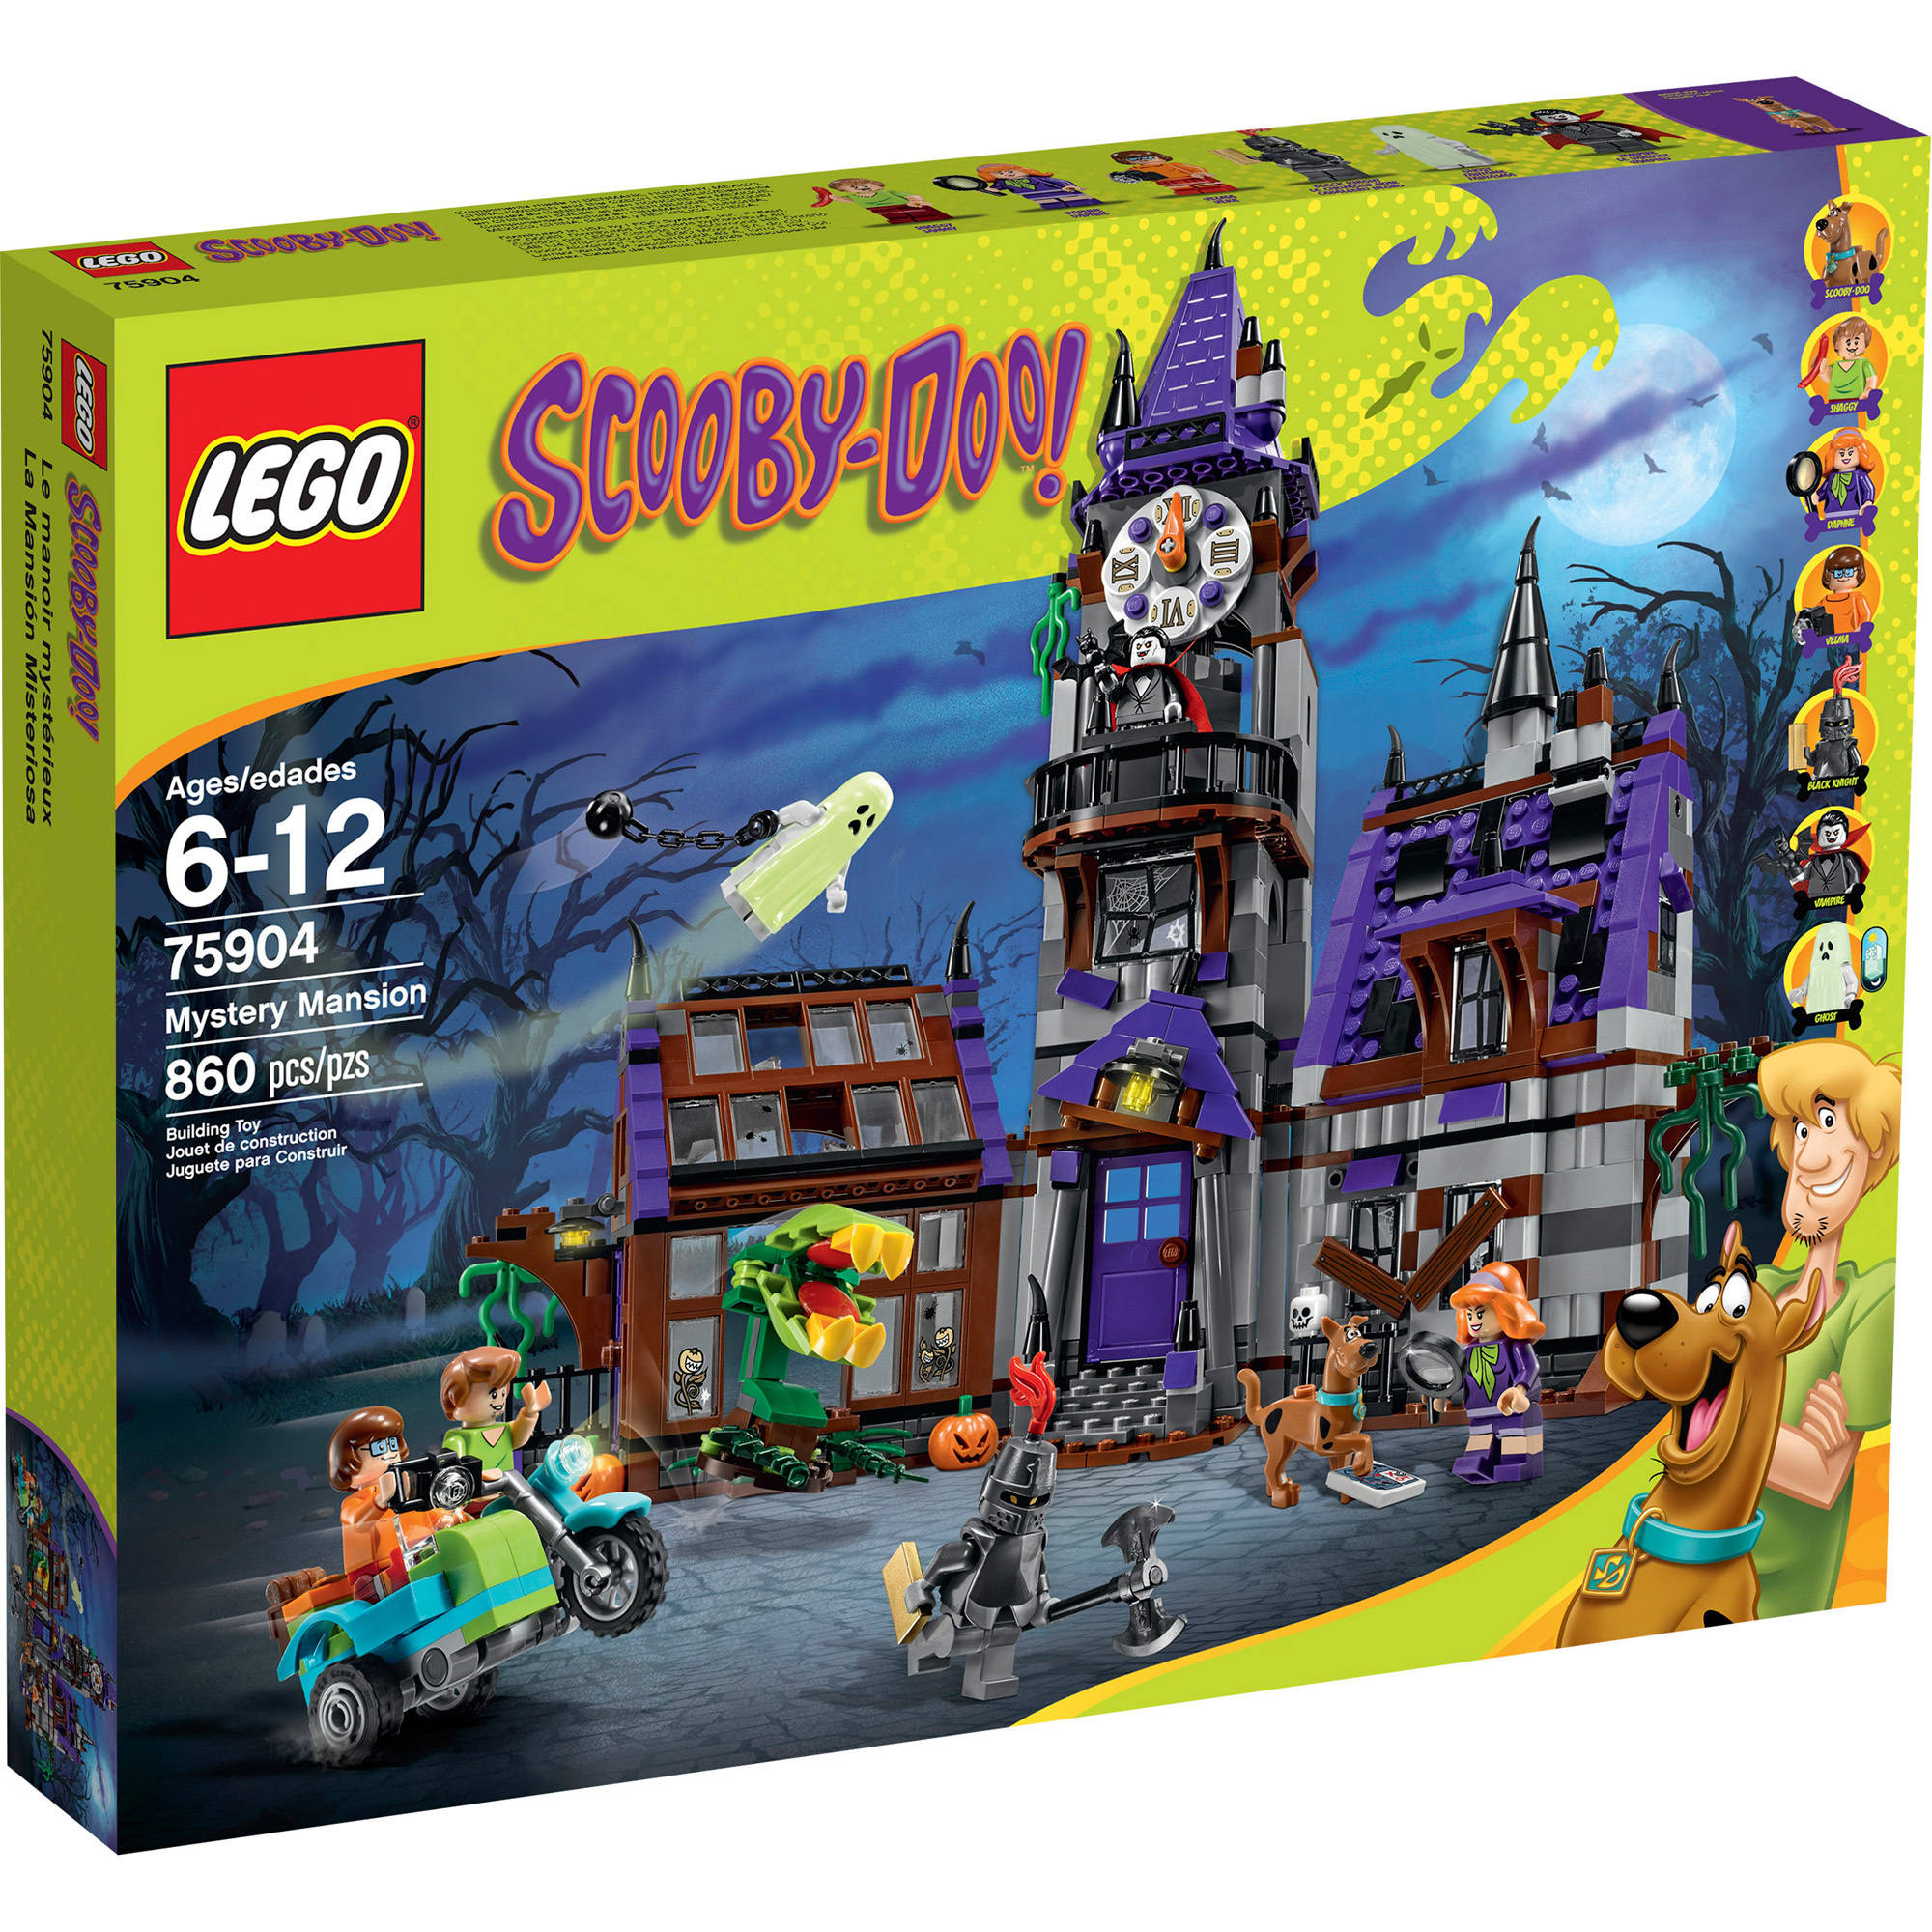 LEGO Scooby-Doo Mystery Mansion, 75904